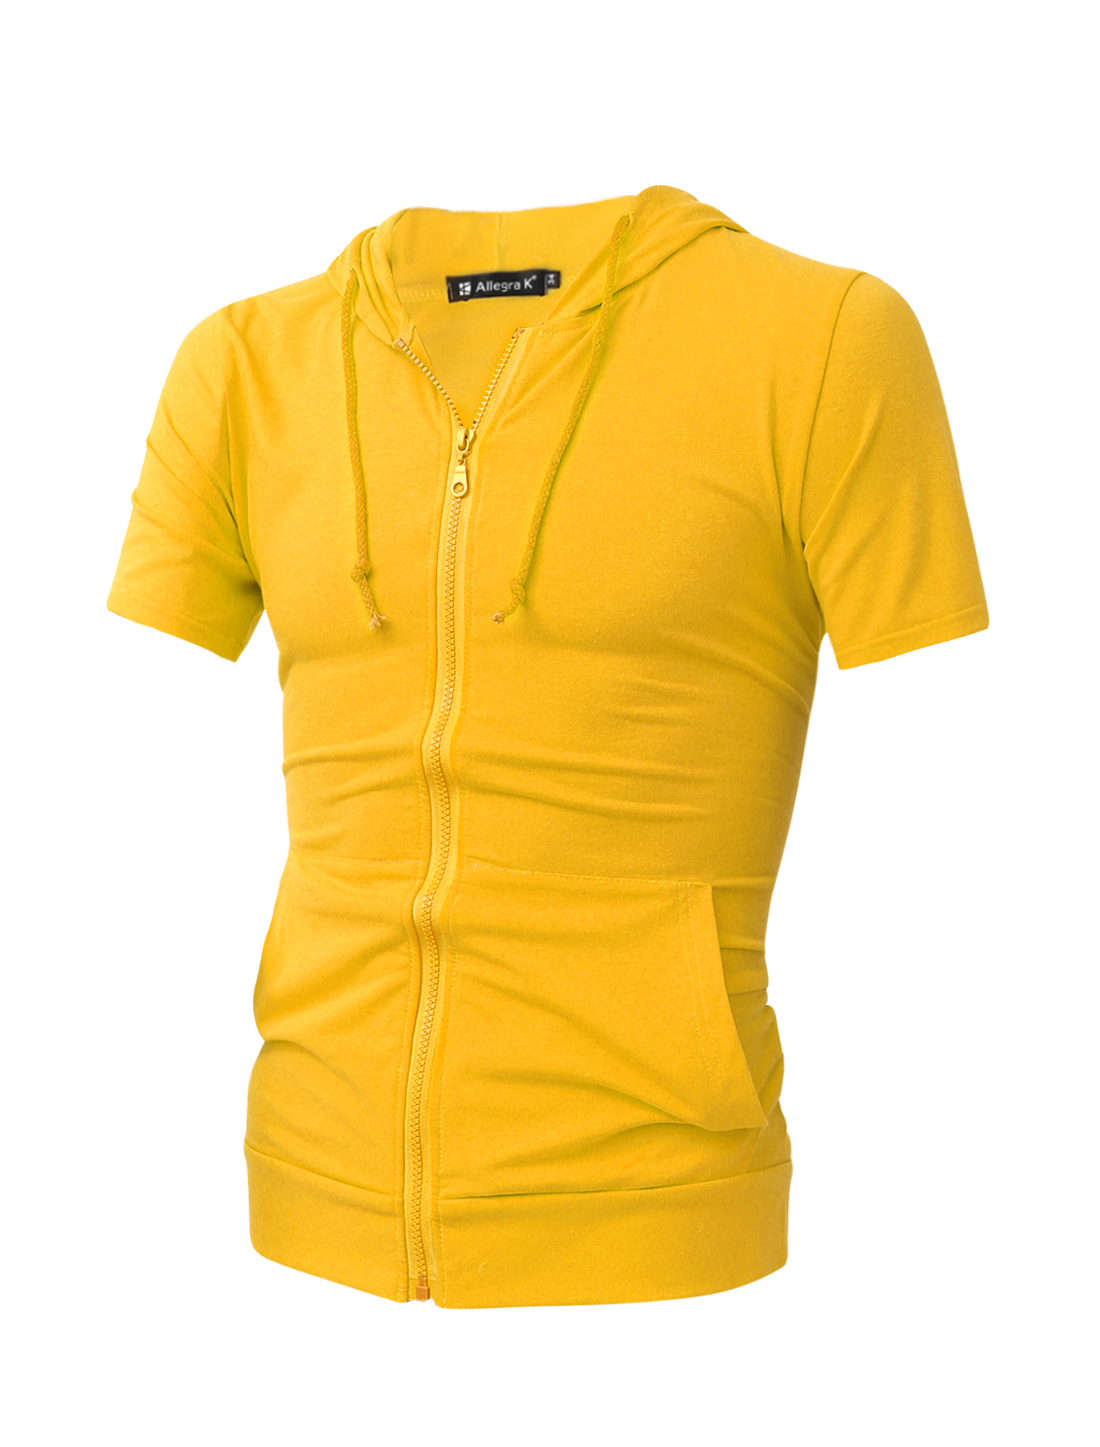 Man Zip Closure Front Solid Color Leisure Fashion Hoodie Yellow M